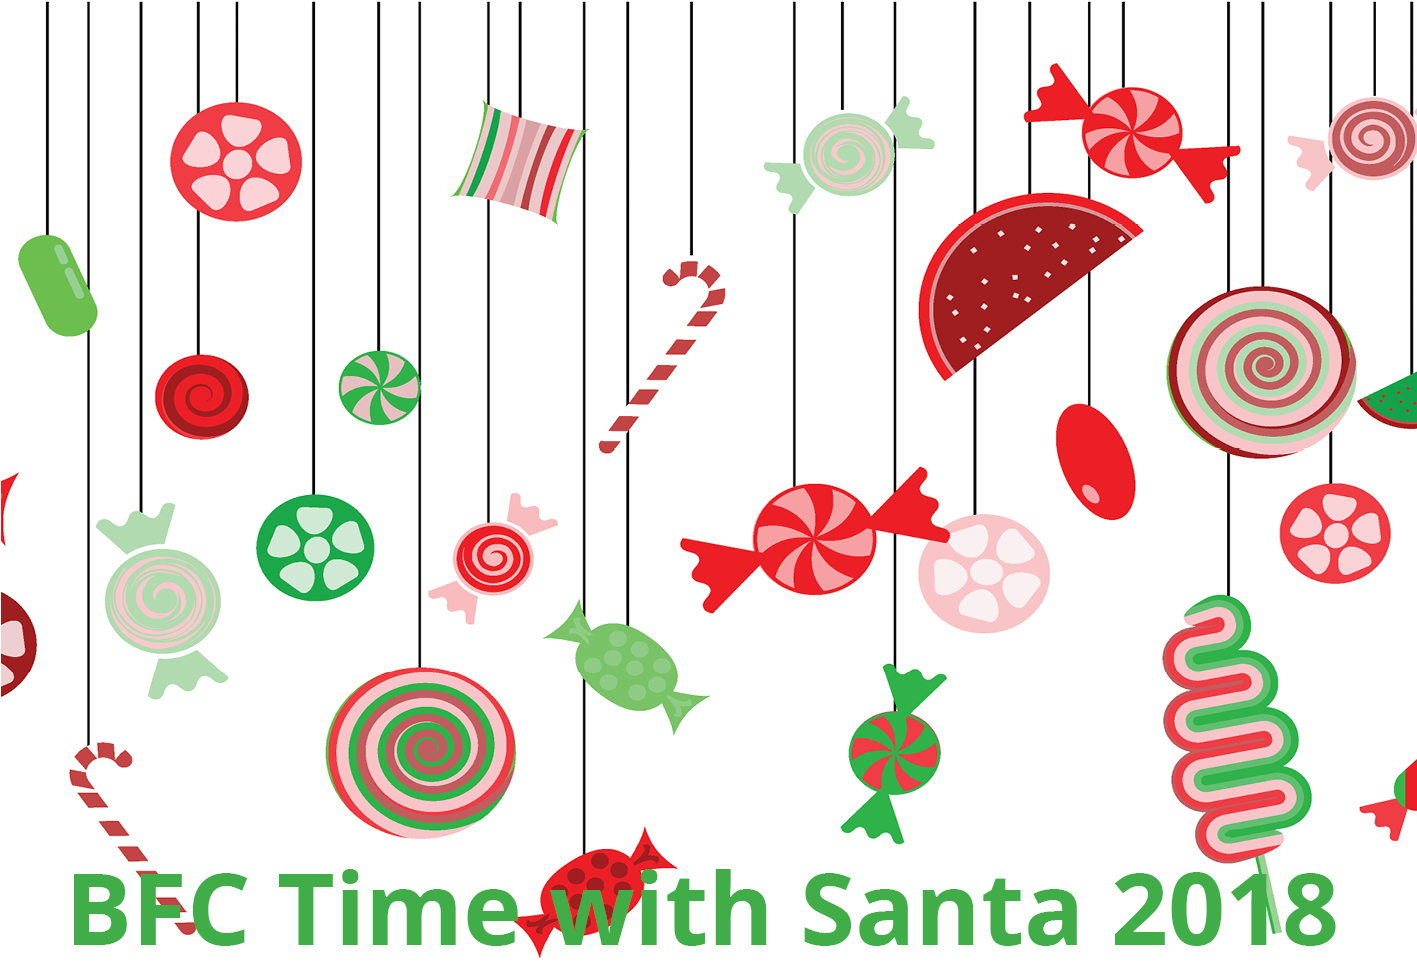 Image for 2018 BFC Time with Santa